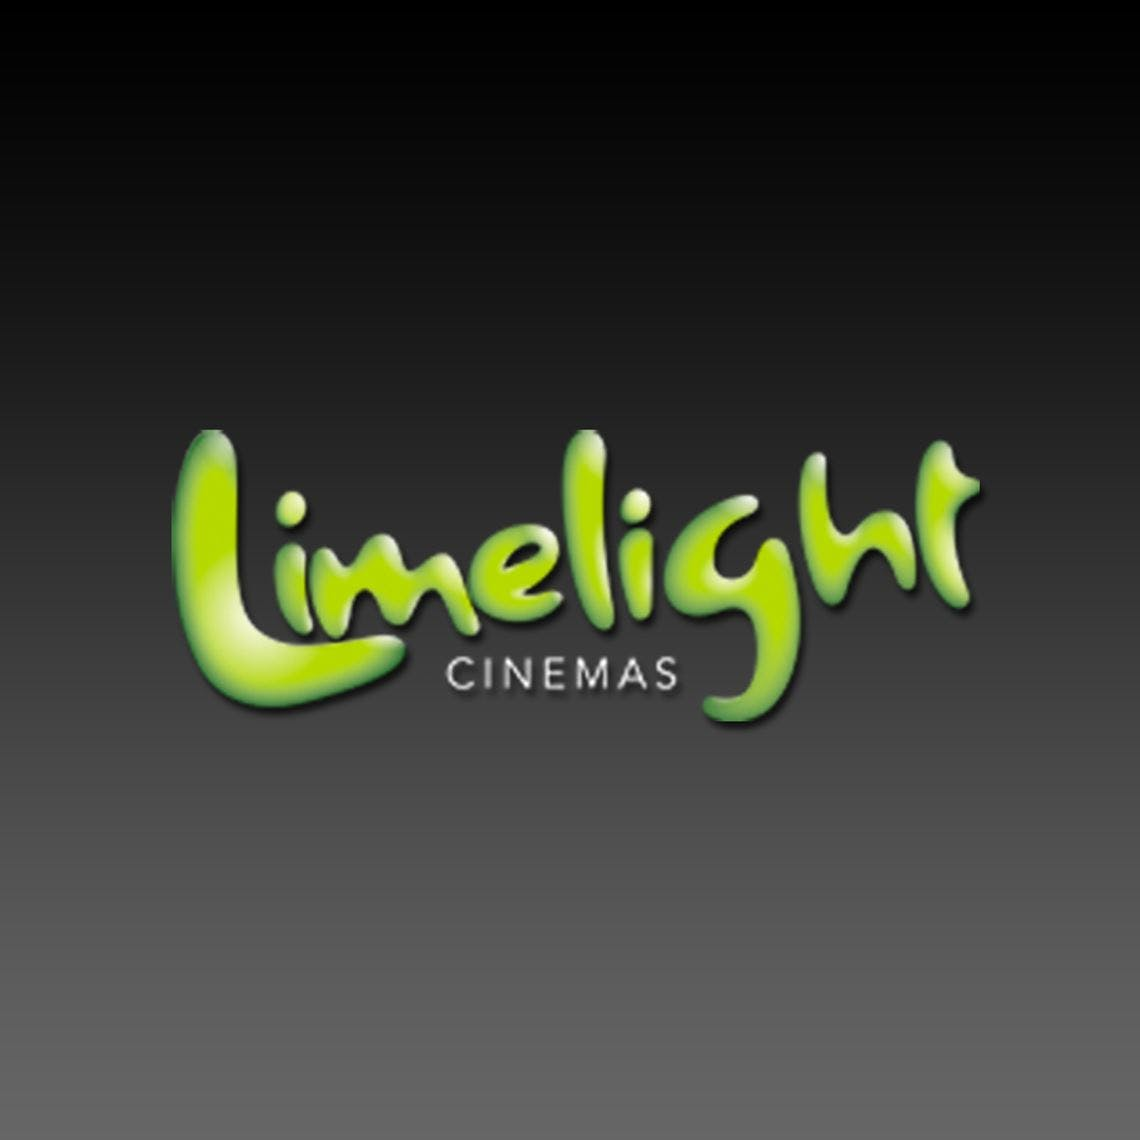 Limelight Cinema - Accommodation Perth